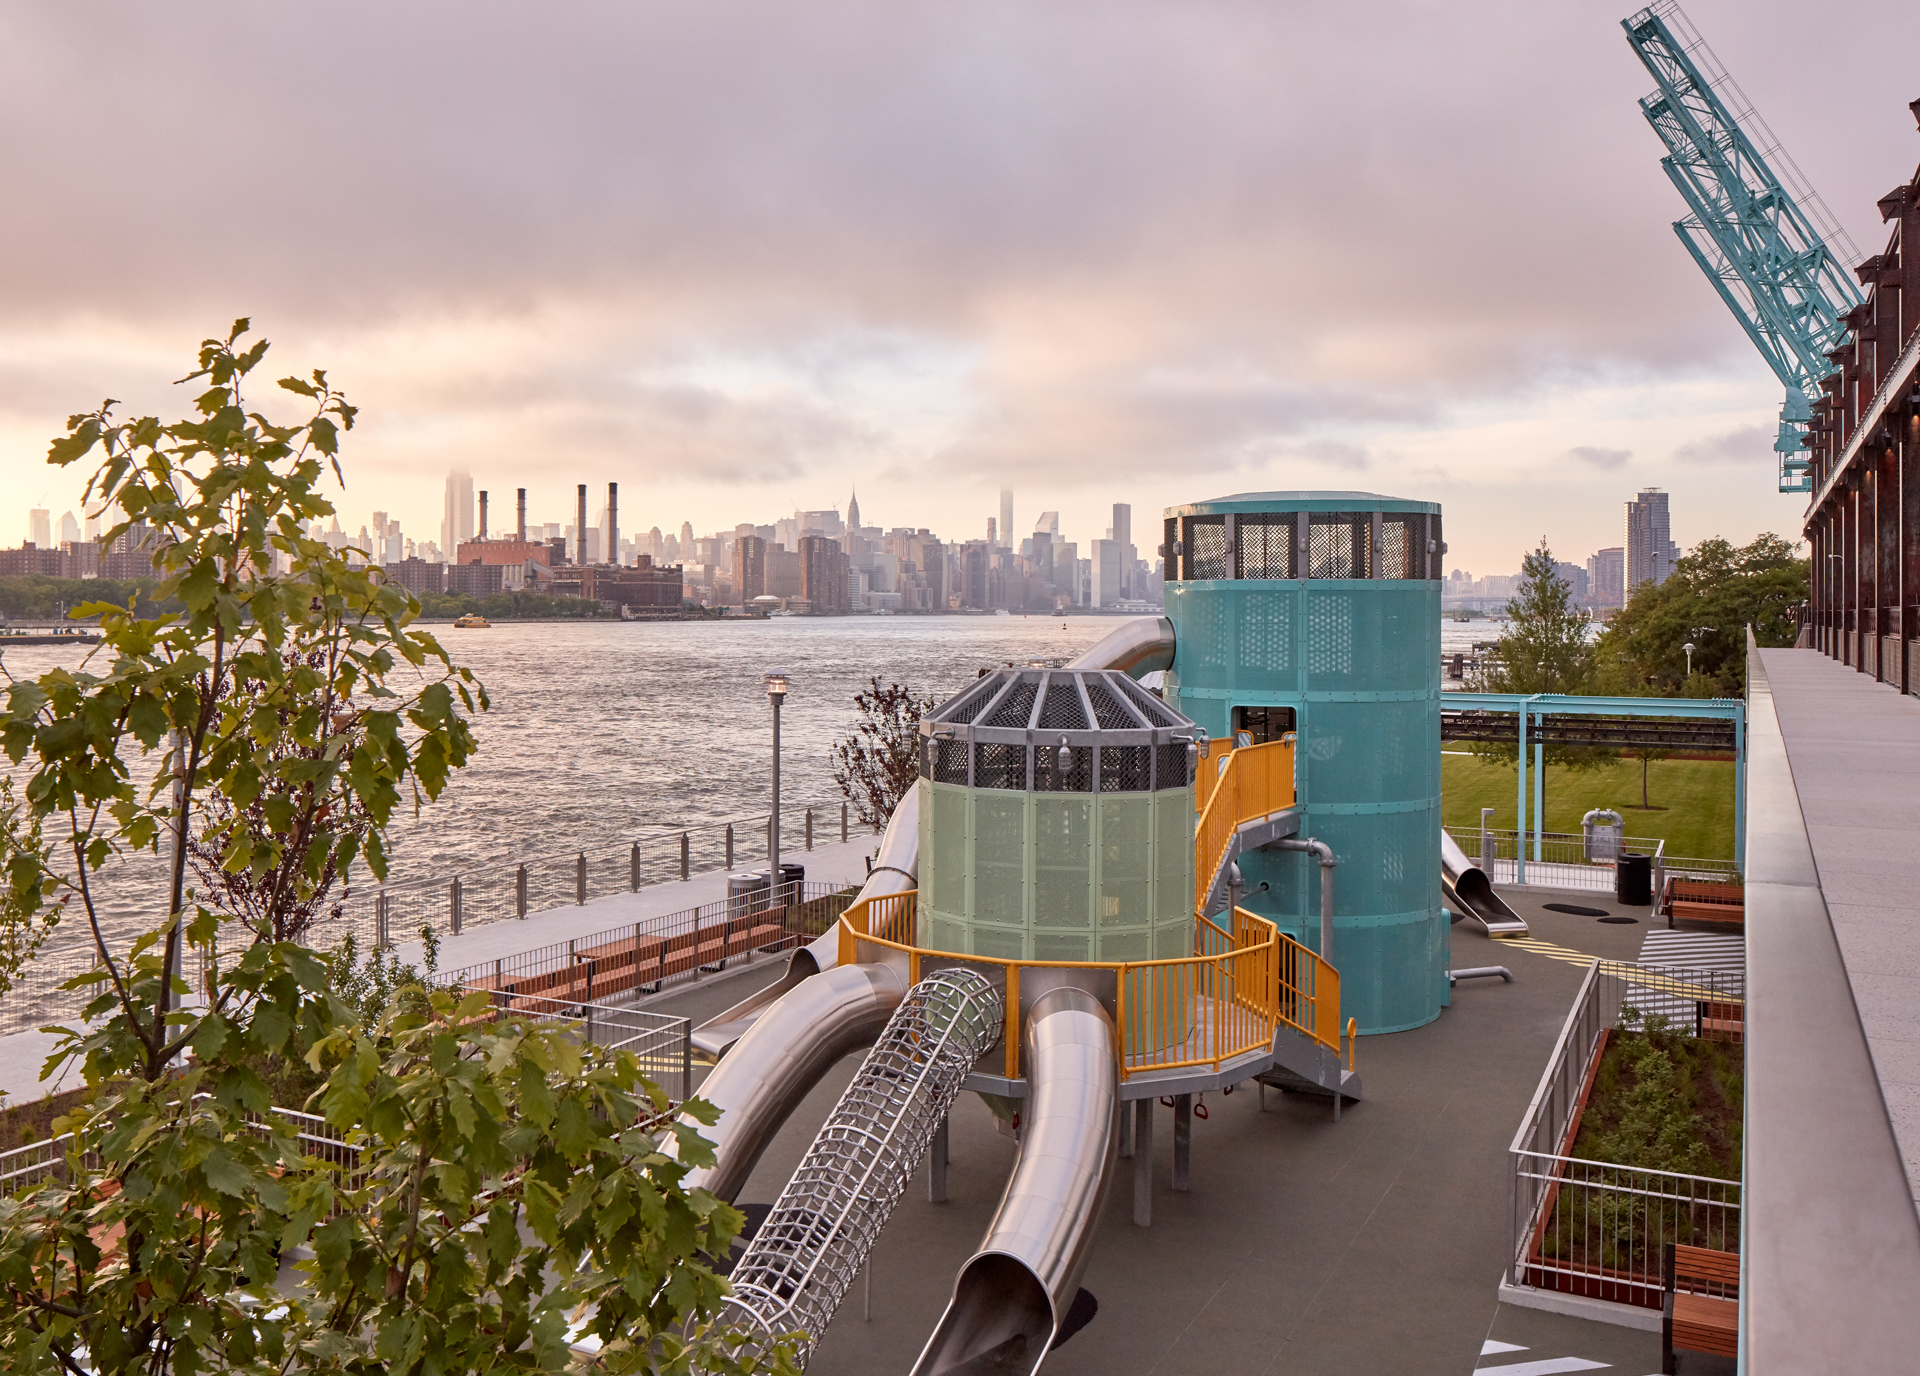 Best kids' playgrounds in NYC